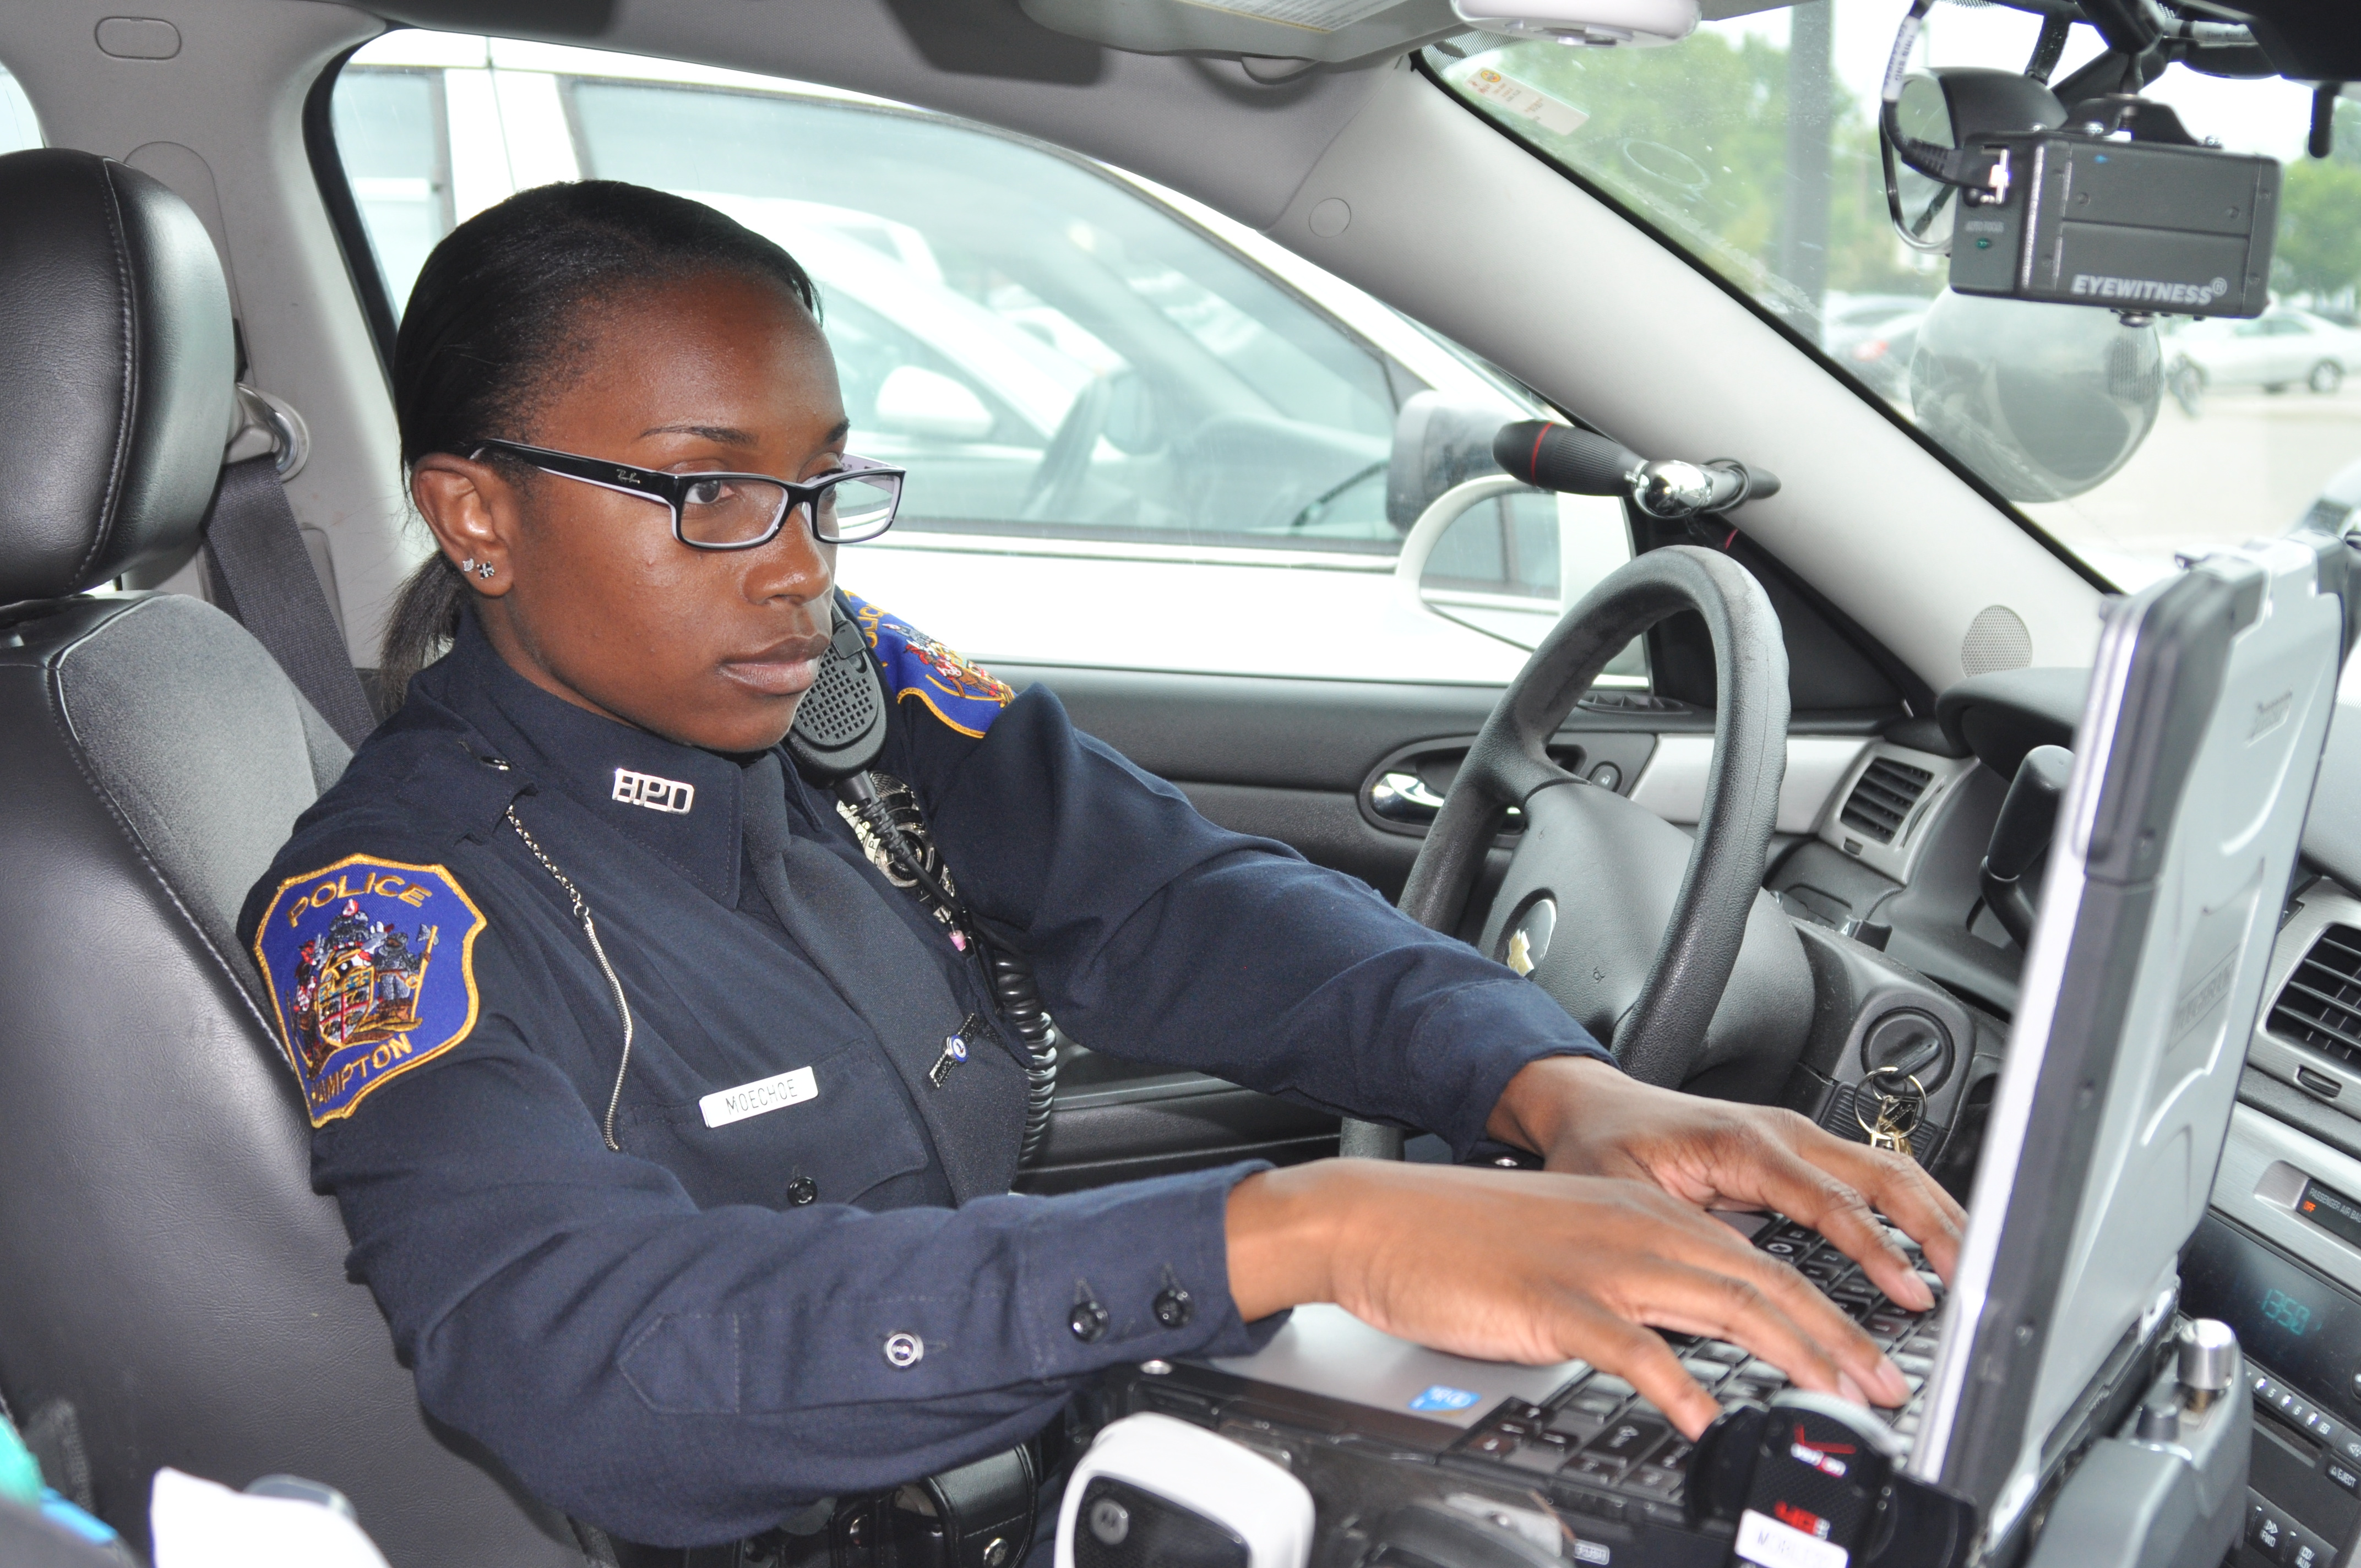 Female Police Officer in Police Vehicle Typing on Computer